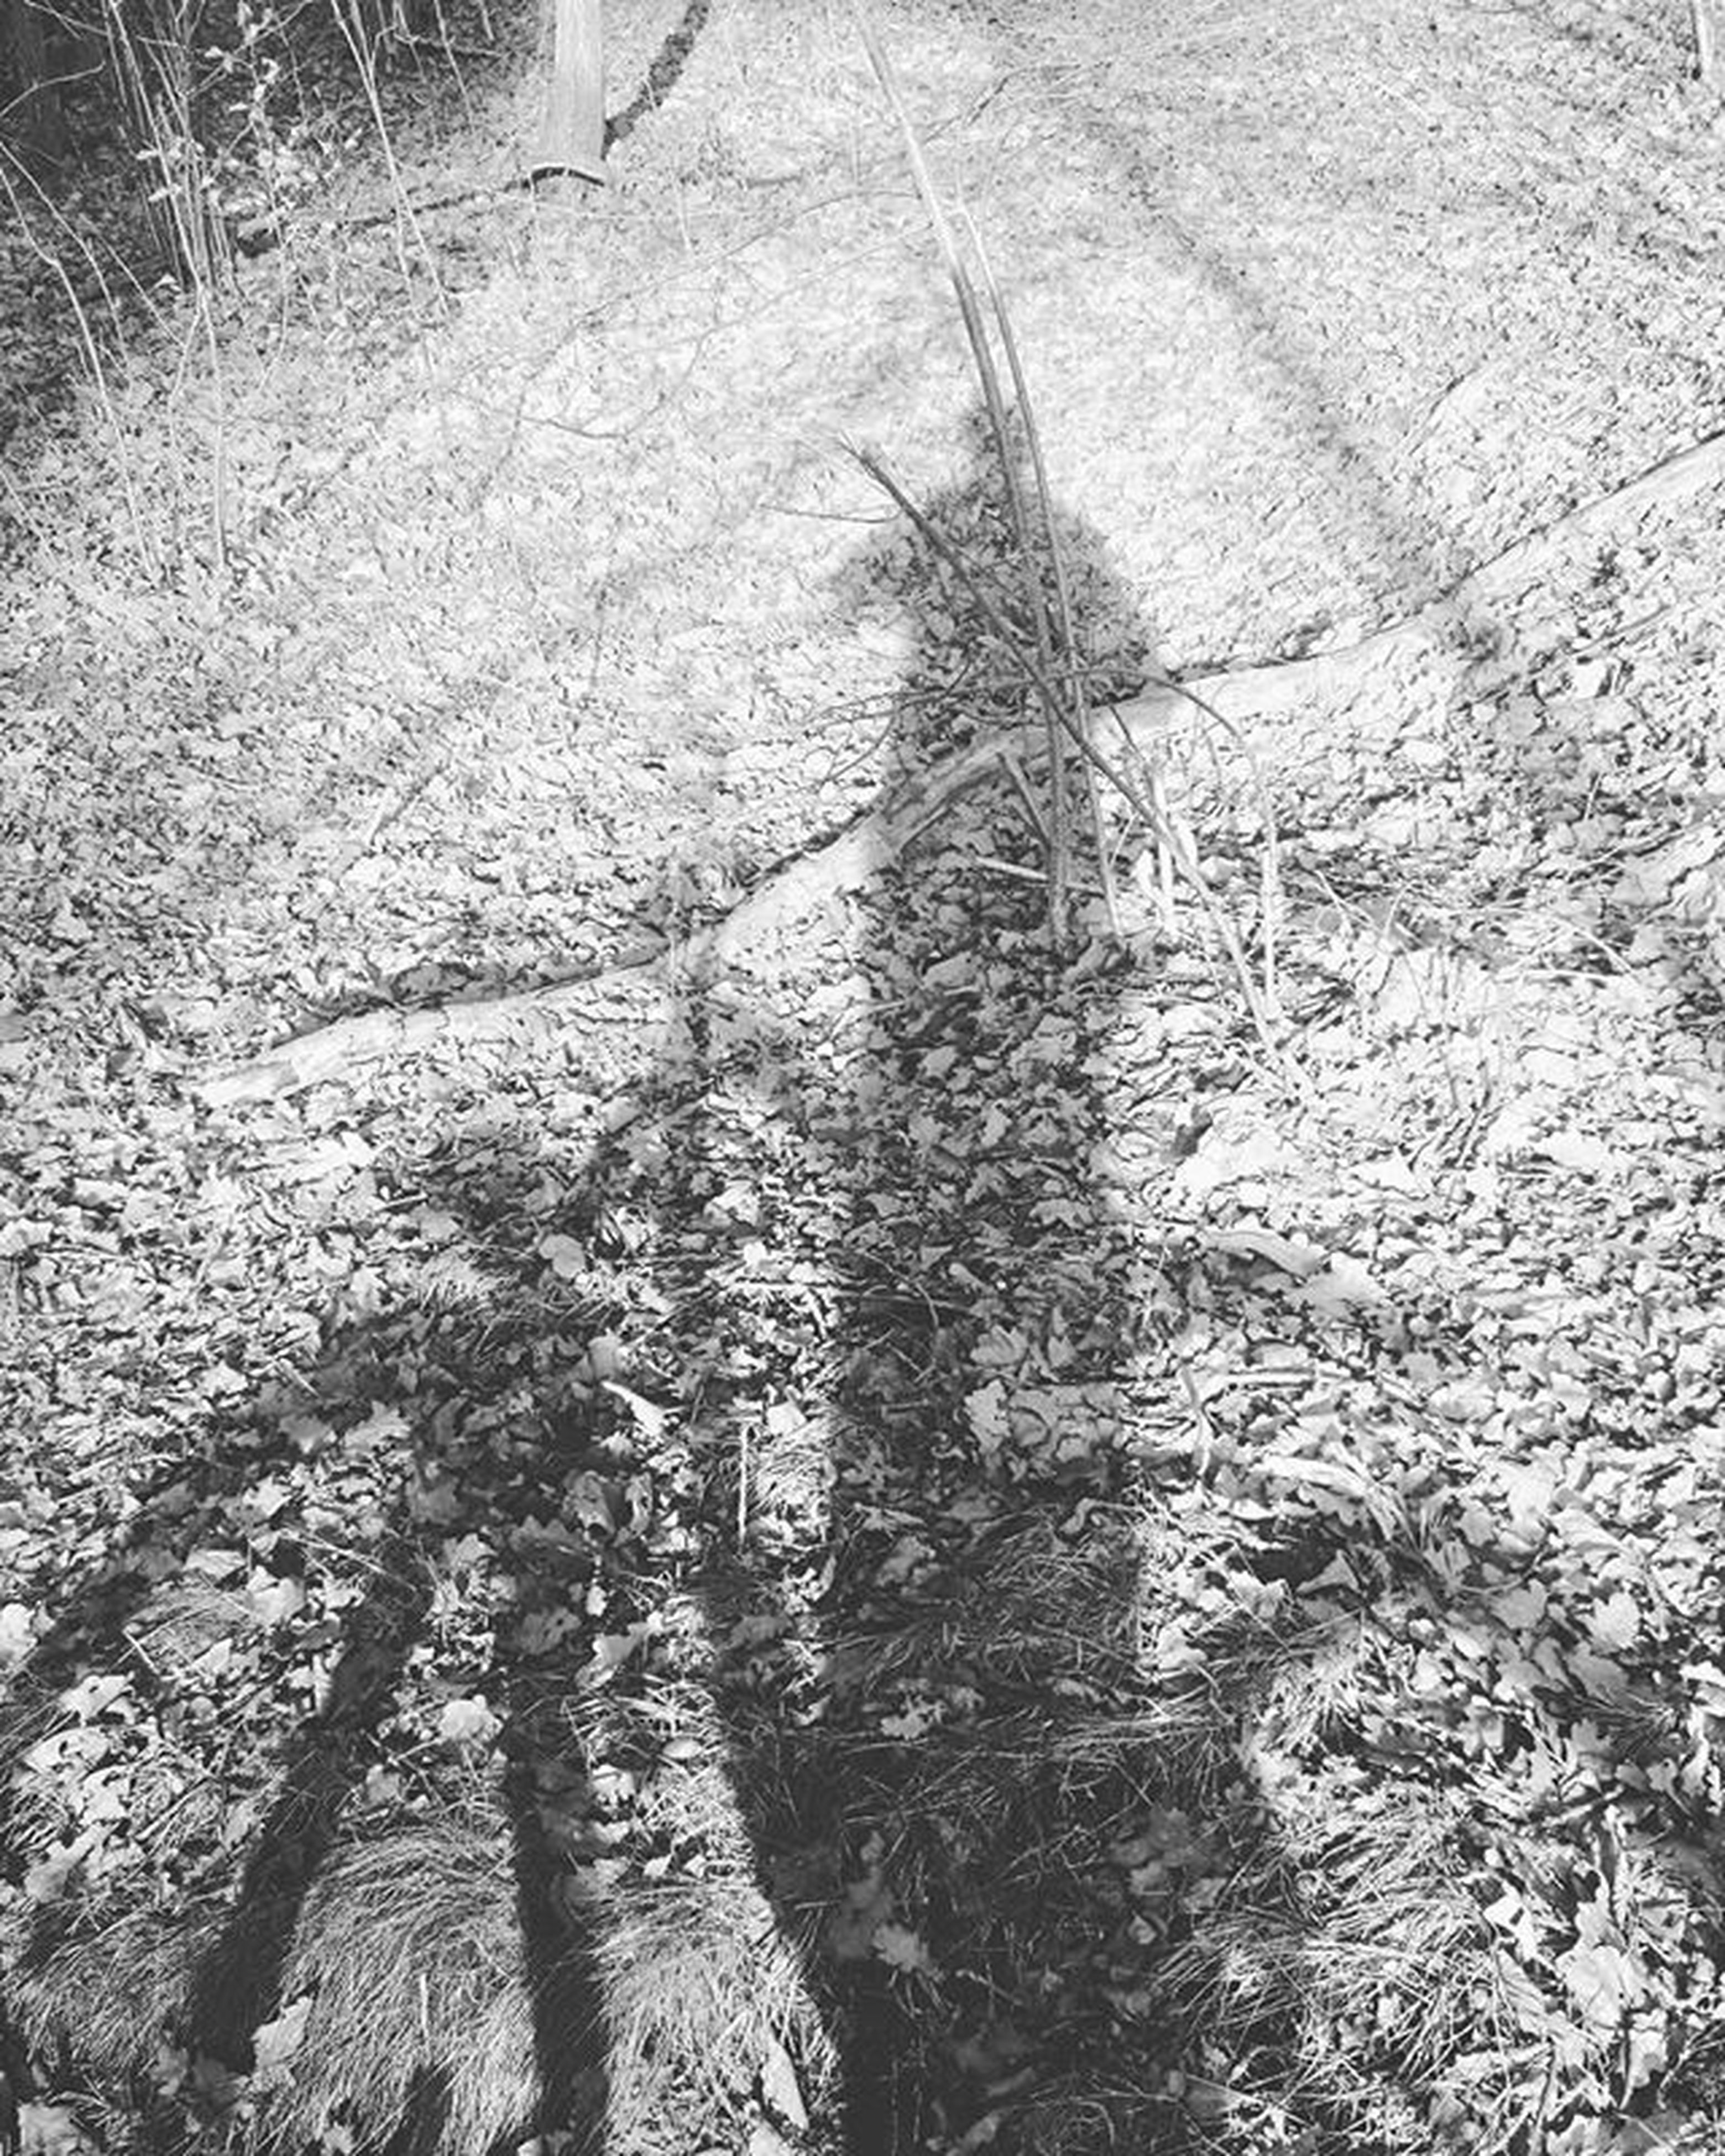 high angle view, shadow, sunlight, day, textured, nature, street, focus on shadow, outdoors, road, tree trunk, tree, no people, puddle, winter, footprint, tranquility, unrecognizable person, sand, snow